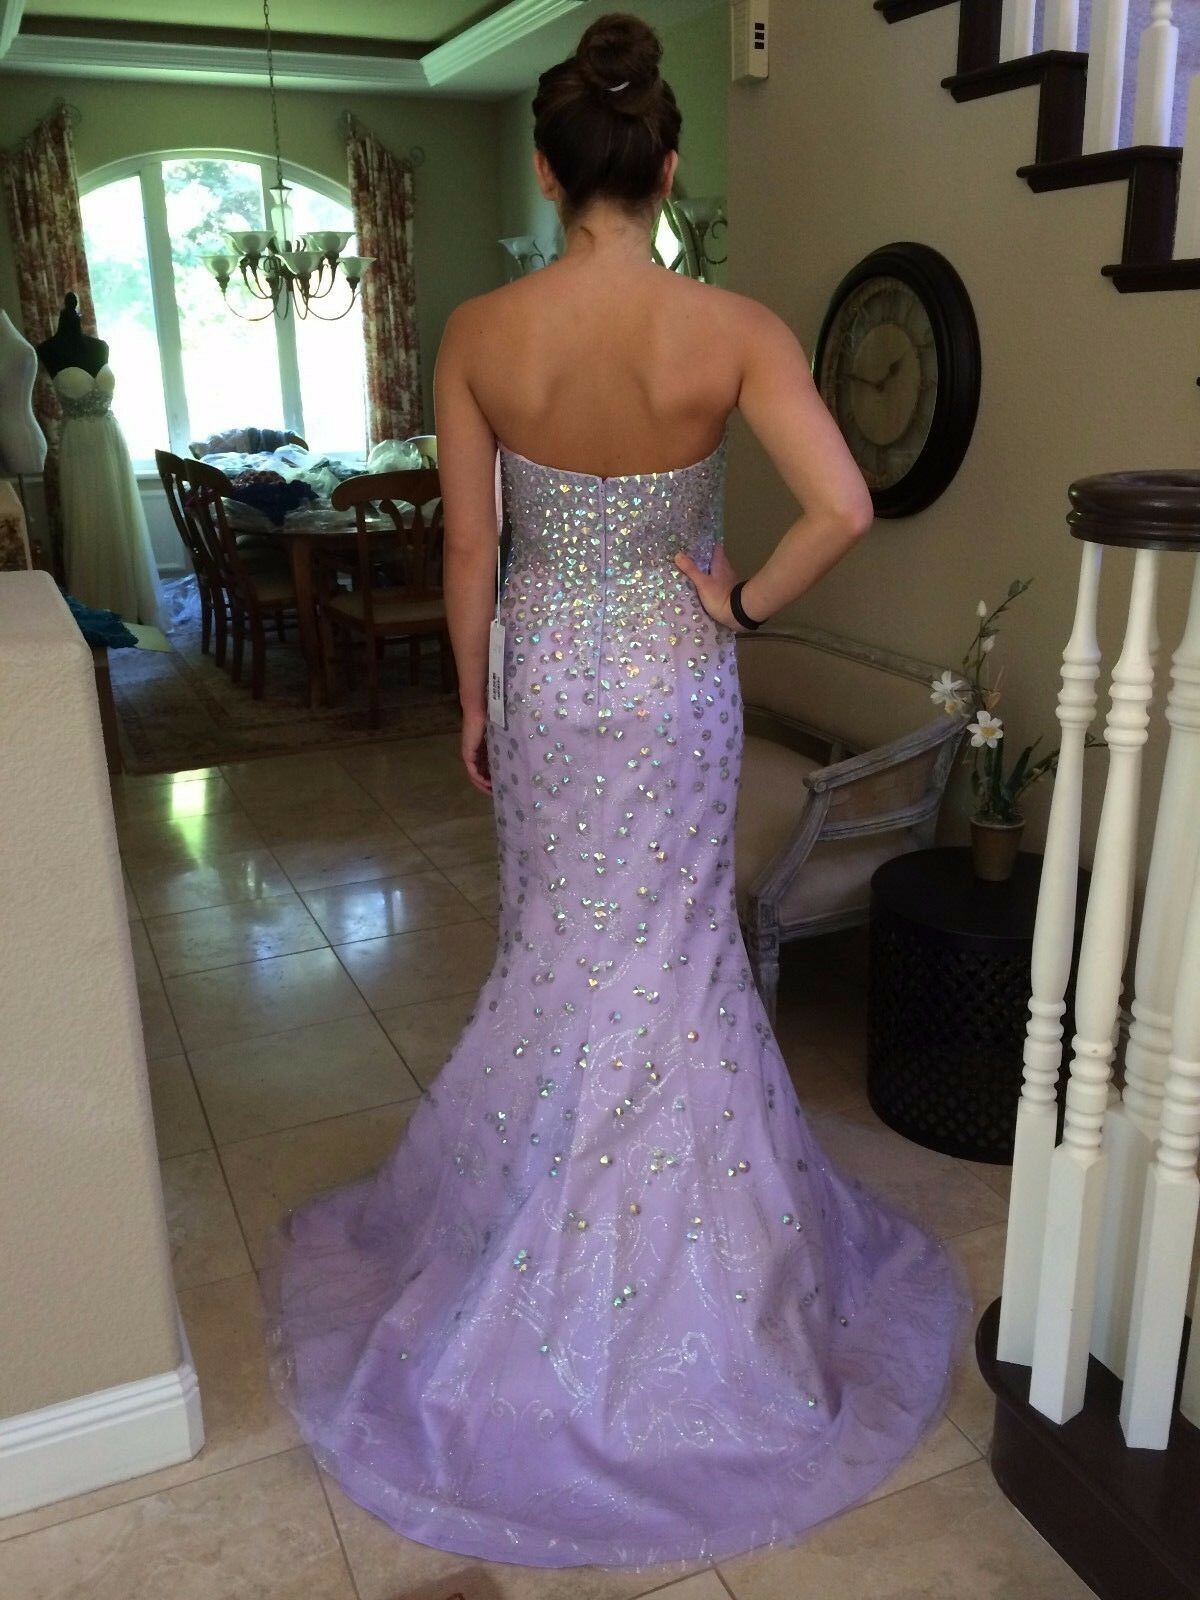 799 NWT NWT NWT JOVANI MERMAID PROM PAGEANT FORMAL DRESS GOWN SIZE 0 d07f94